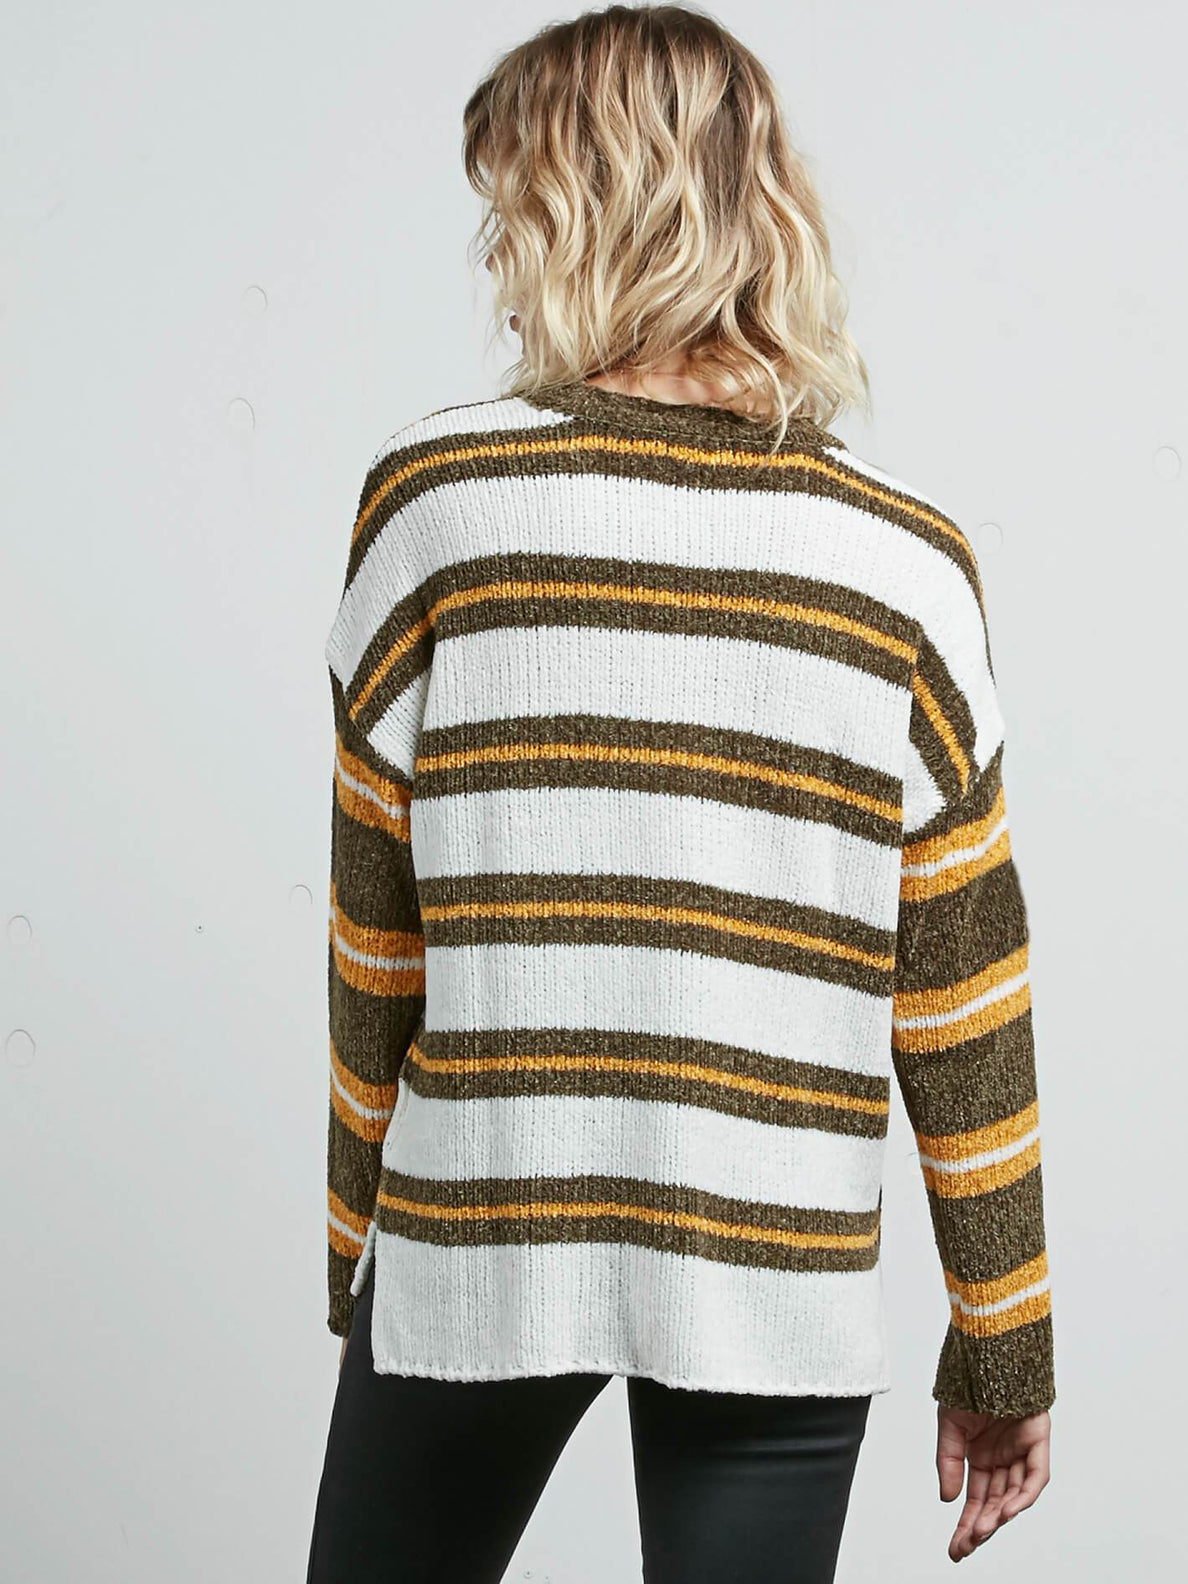 Yarn Moji Sweater In Dark Camo, Back View